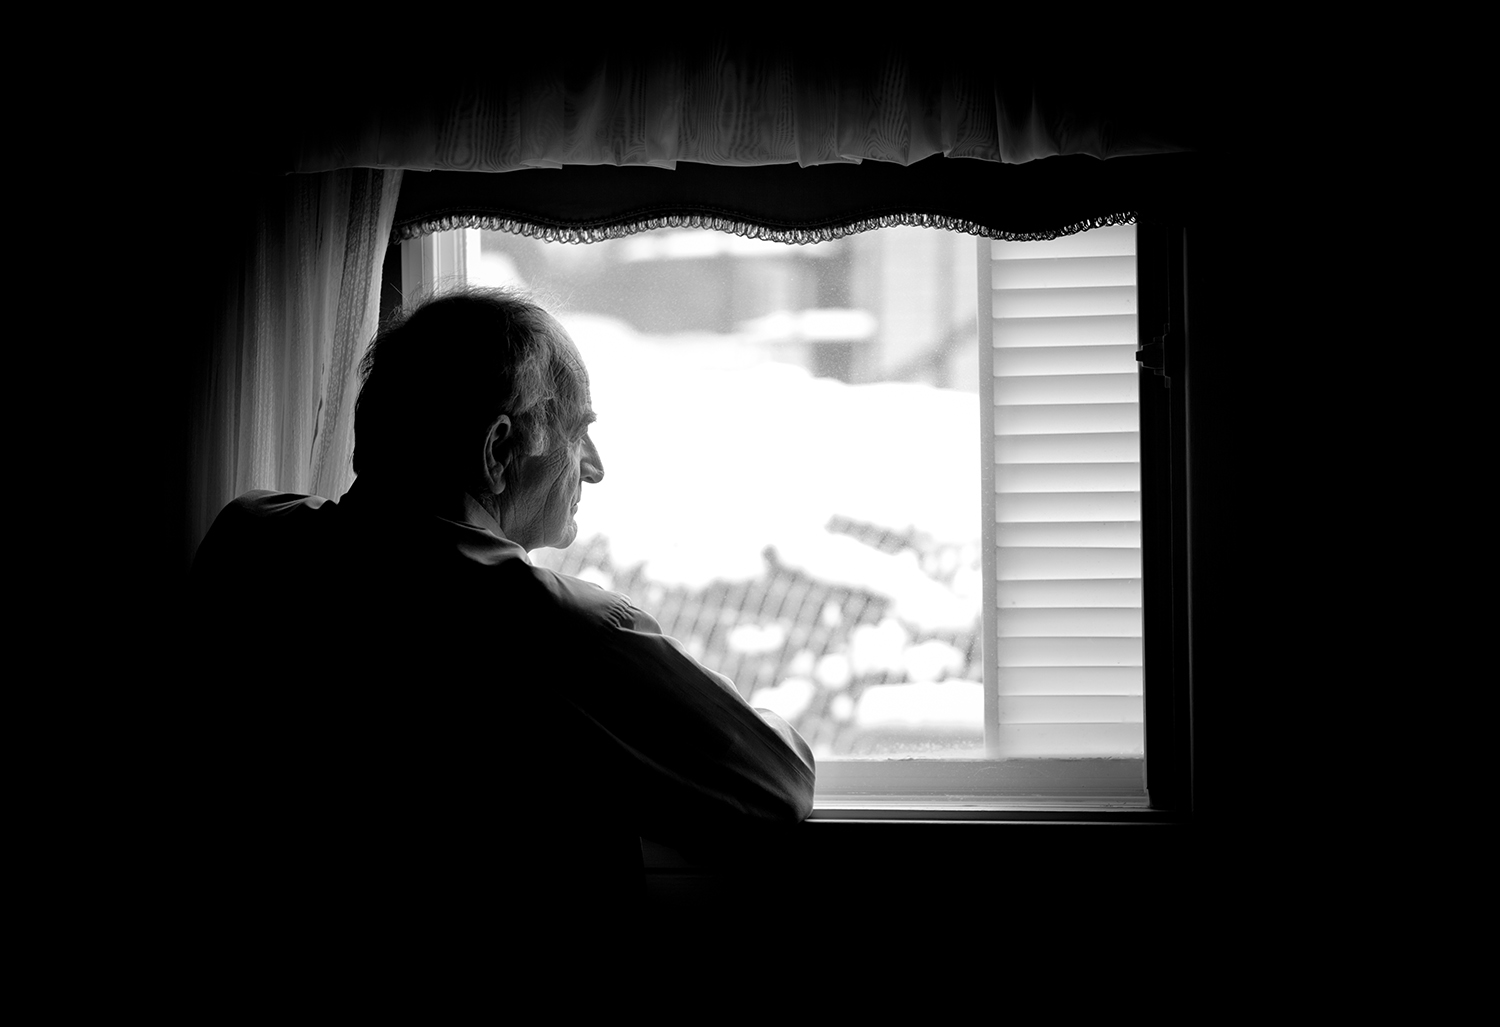 elderly showing signs of depression